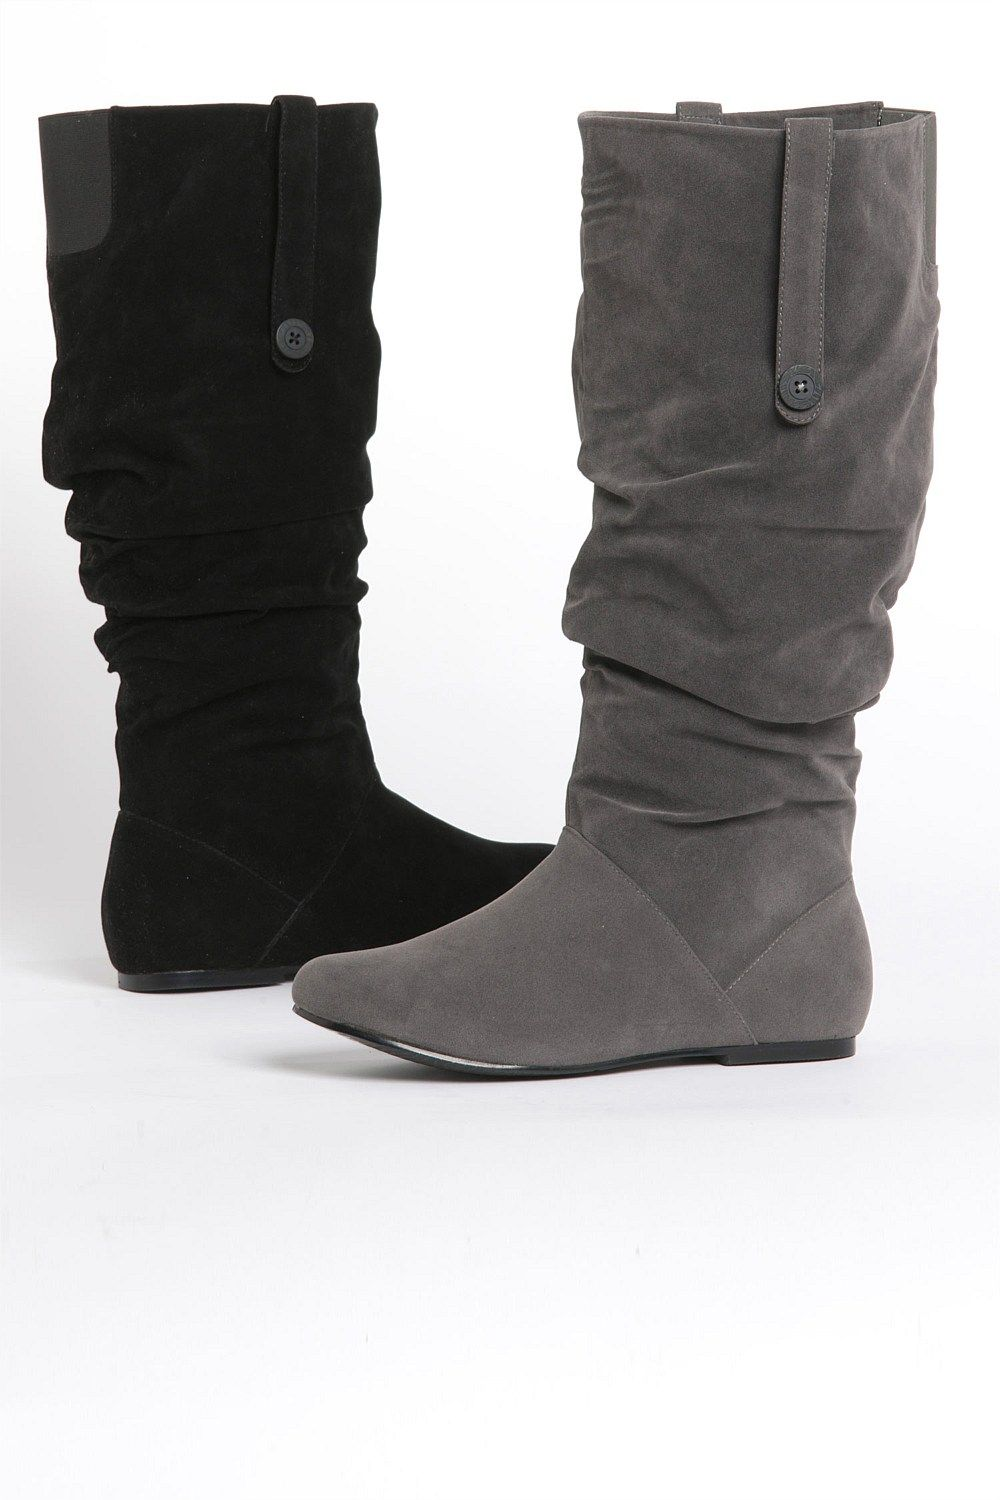 Women's Mid Calf Boots Pull on Flat Slouchy Wide Calf Snow Boots Lace Up Dress Shoes